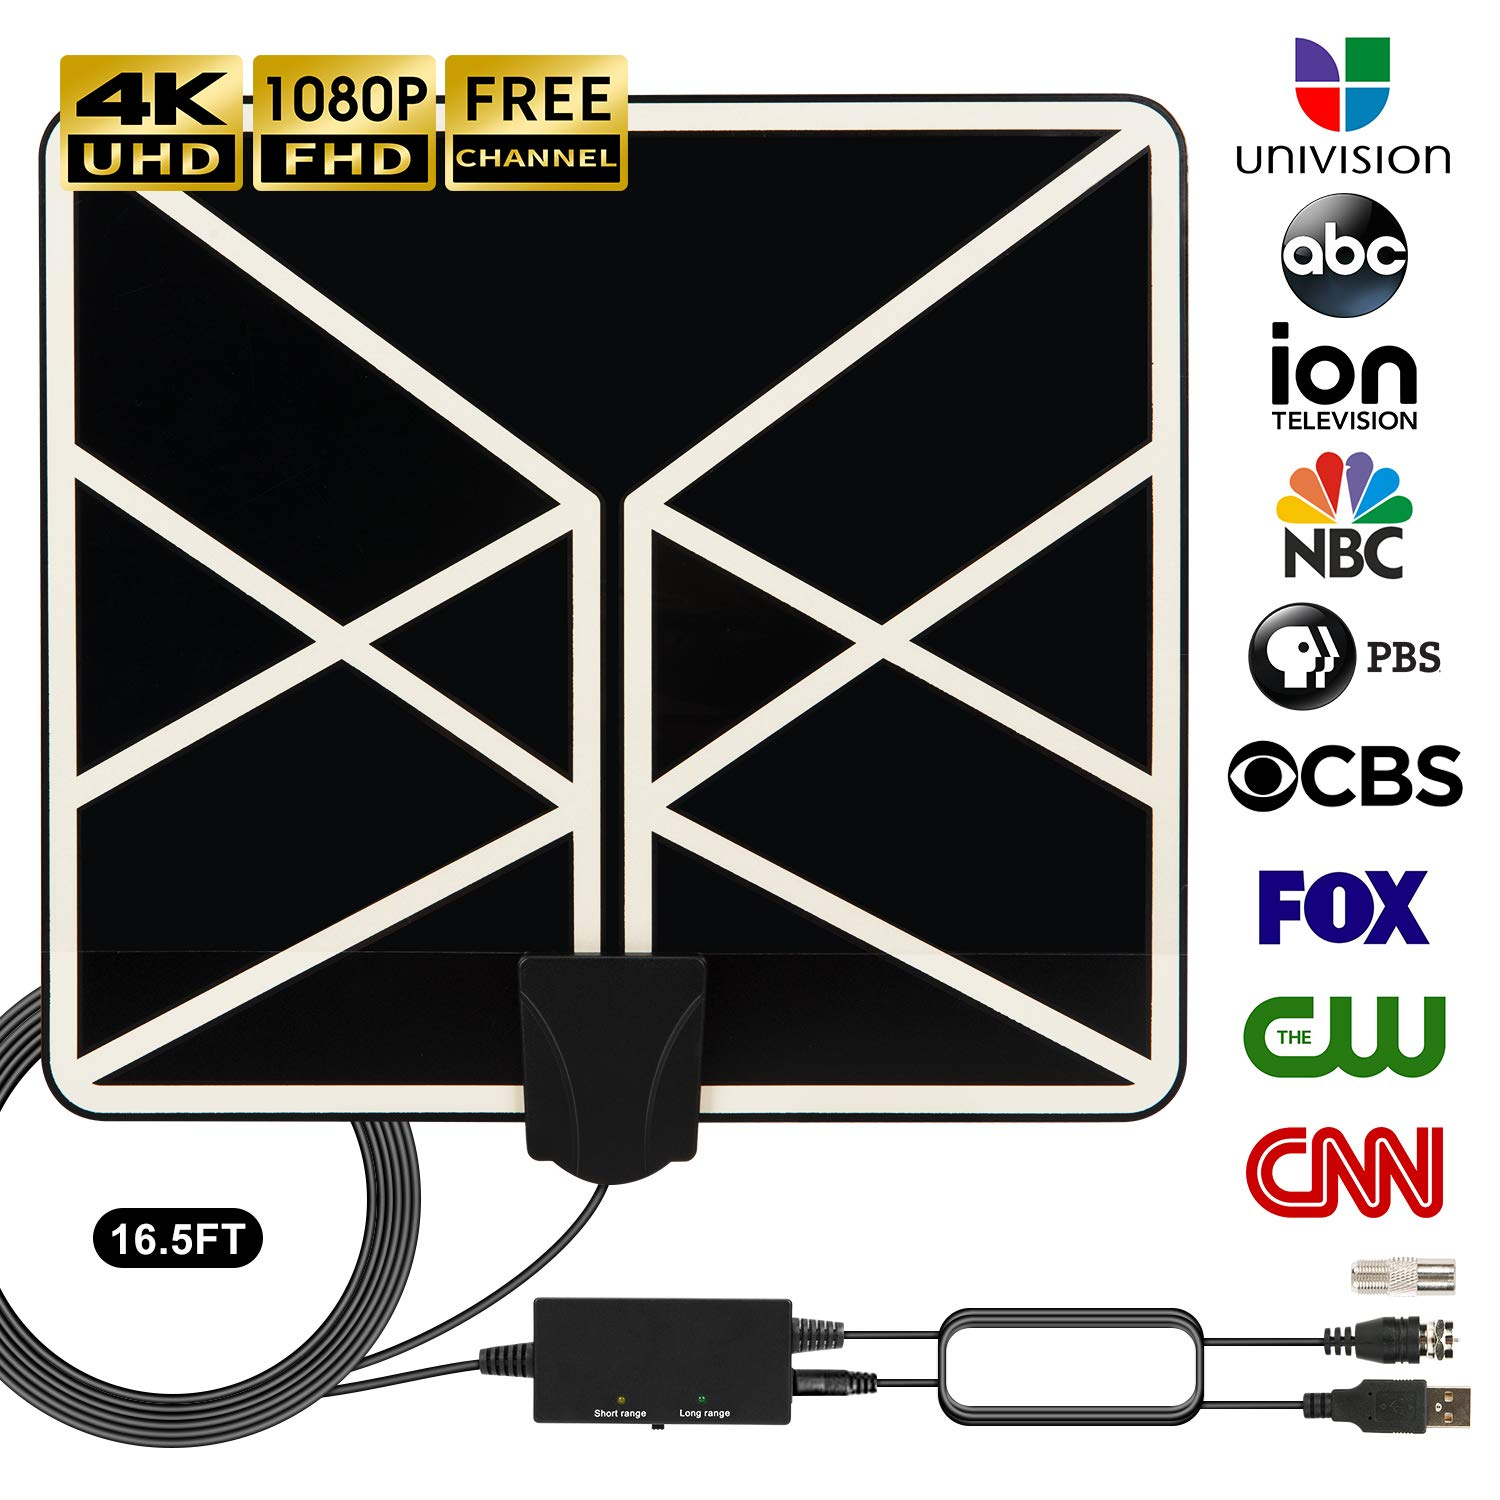 HDTV Antenna 4K 1080p, 2019 New Indoor Amplified Digital TV Antenna 120 Miles Range with Amplifier Signal Booster Free Local Channels Support All Television with 18 FT Coaxial Cable (Black)